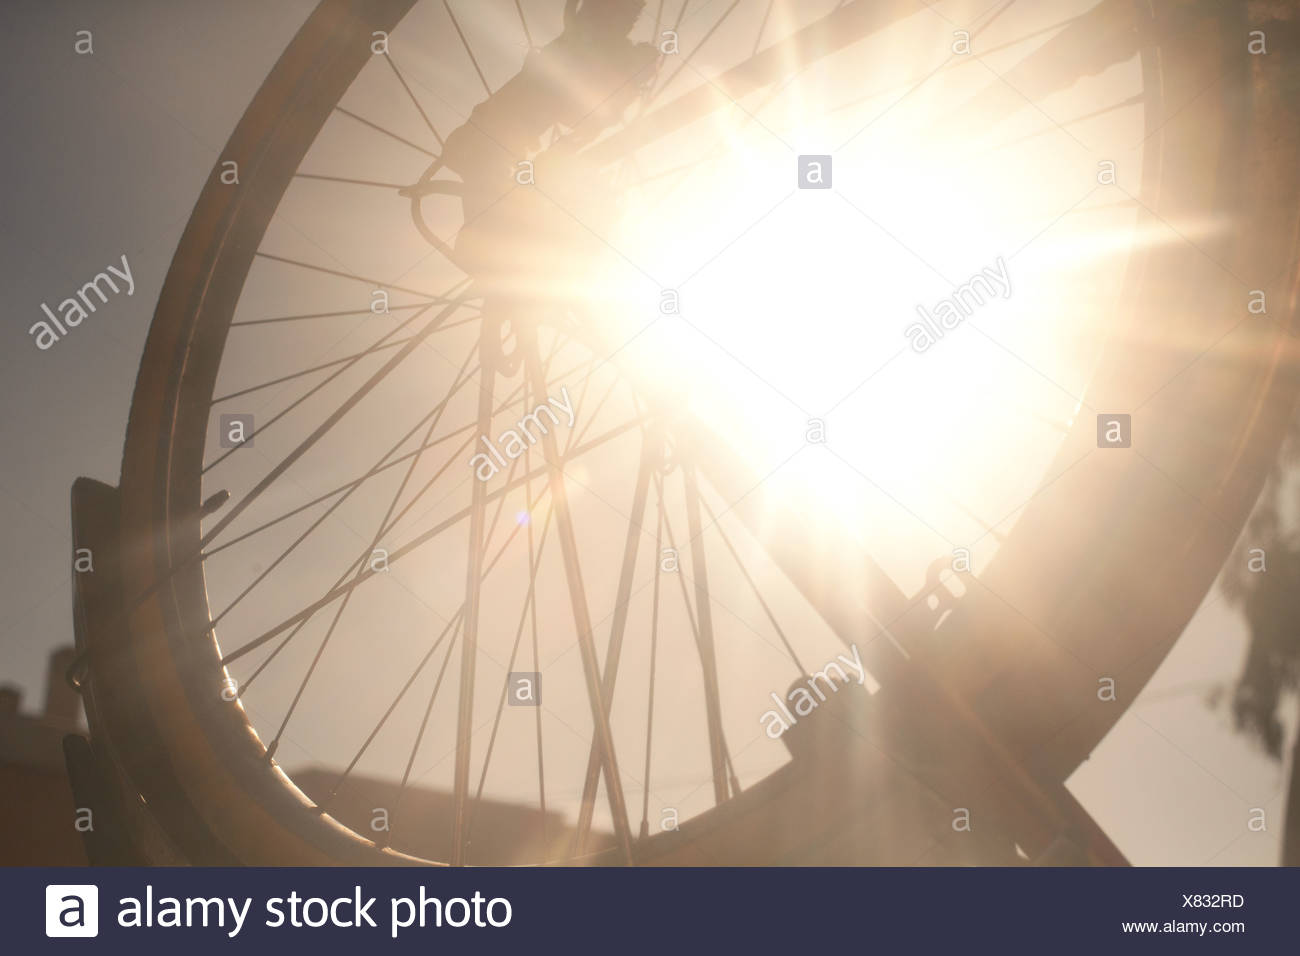 Bicycle wheel in bright sunlight - Stock Image